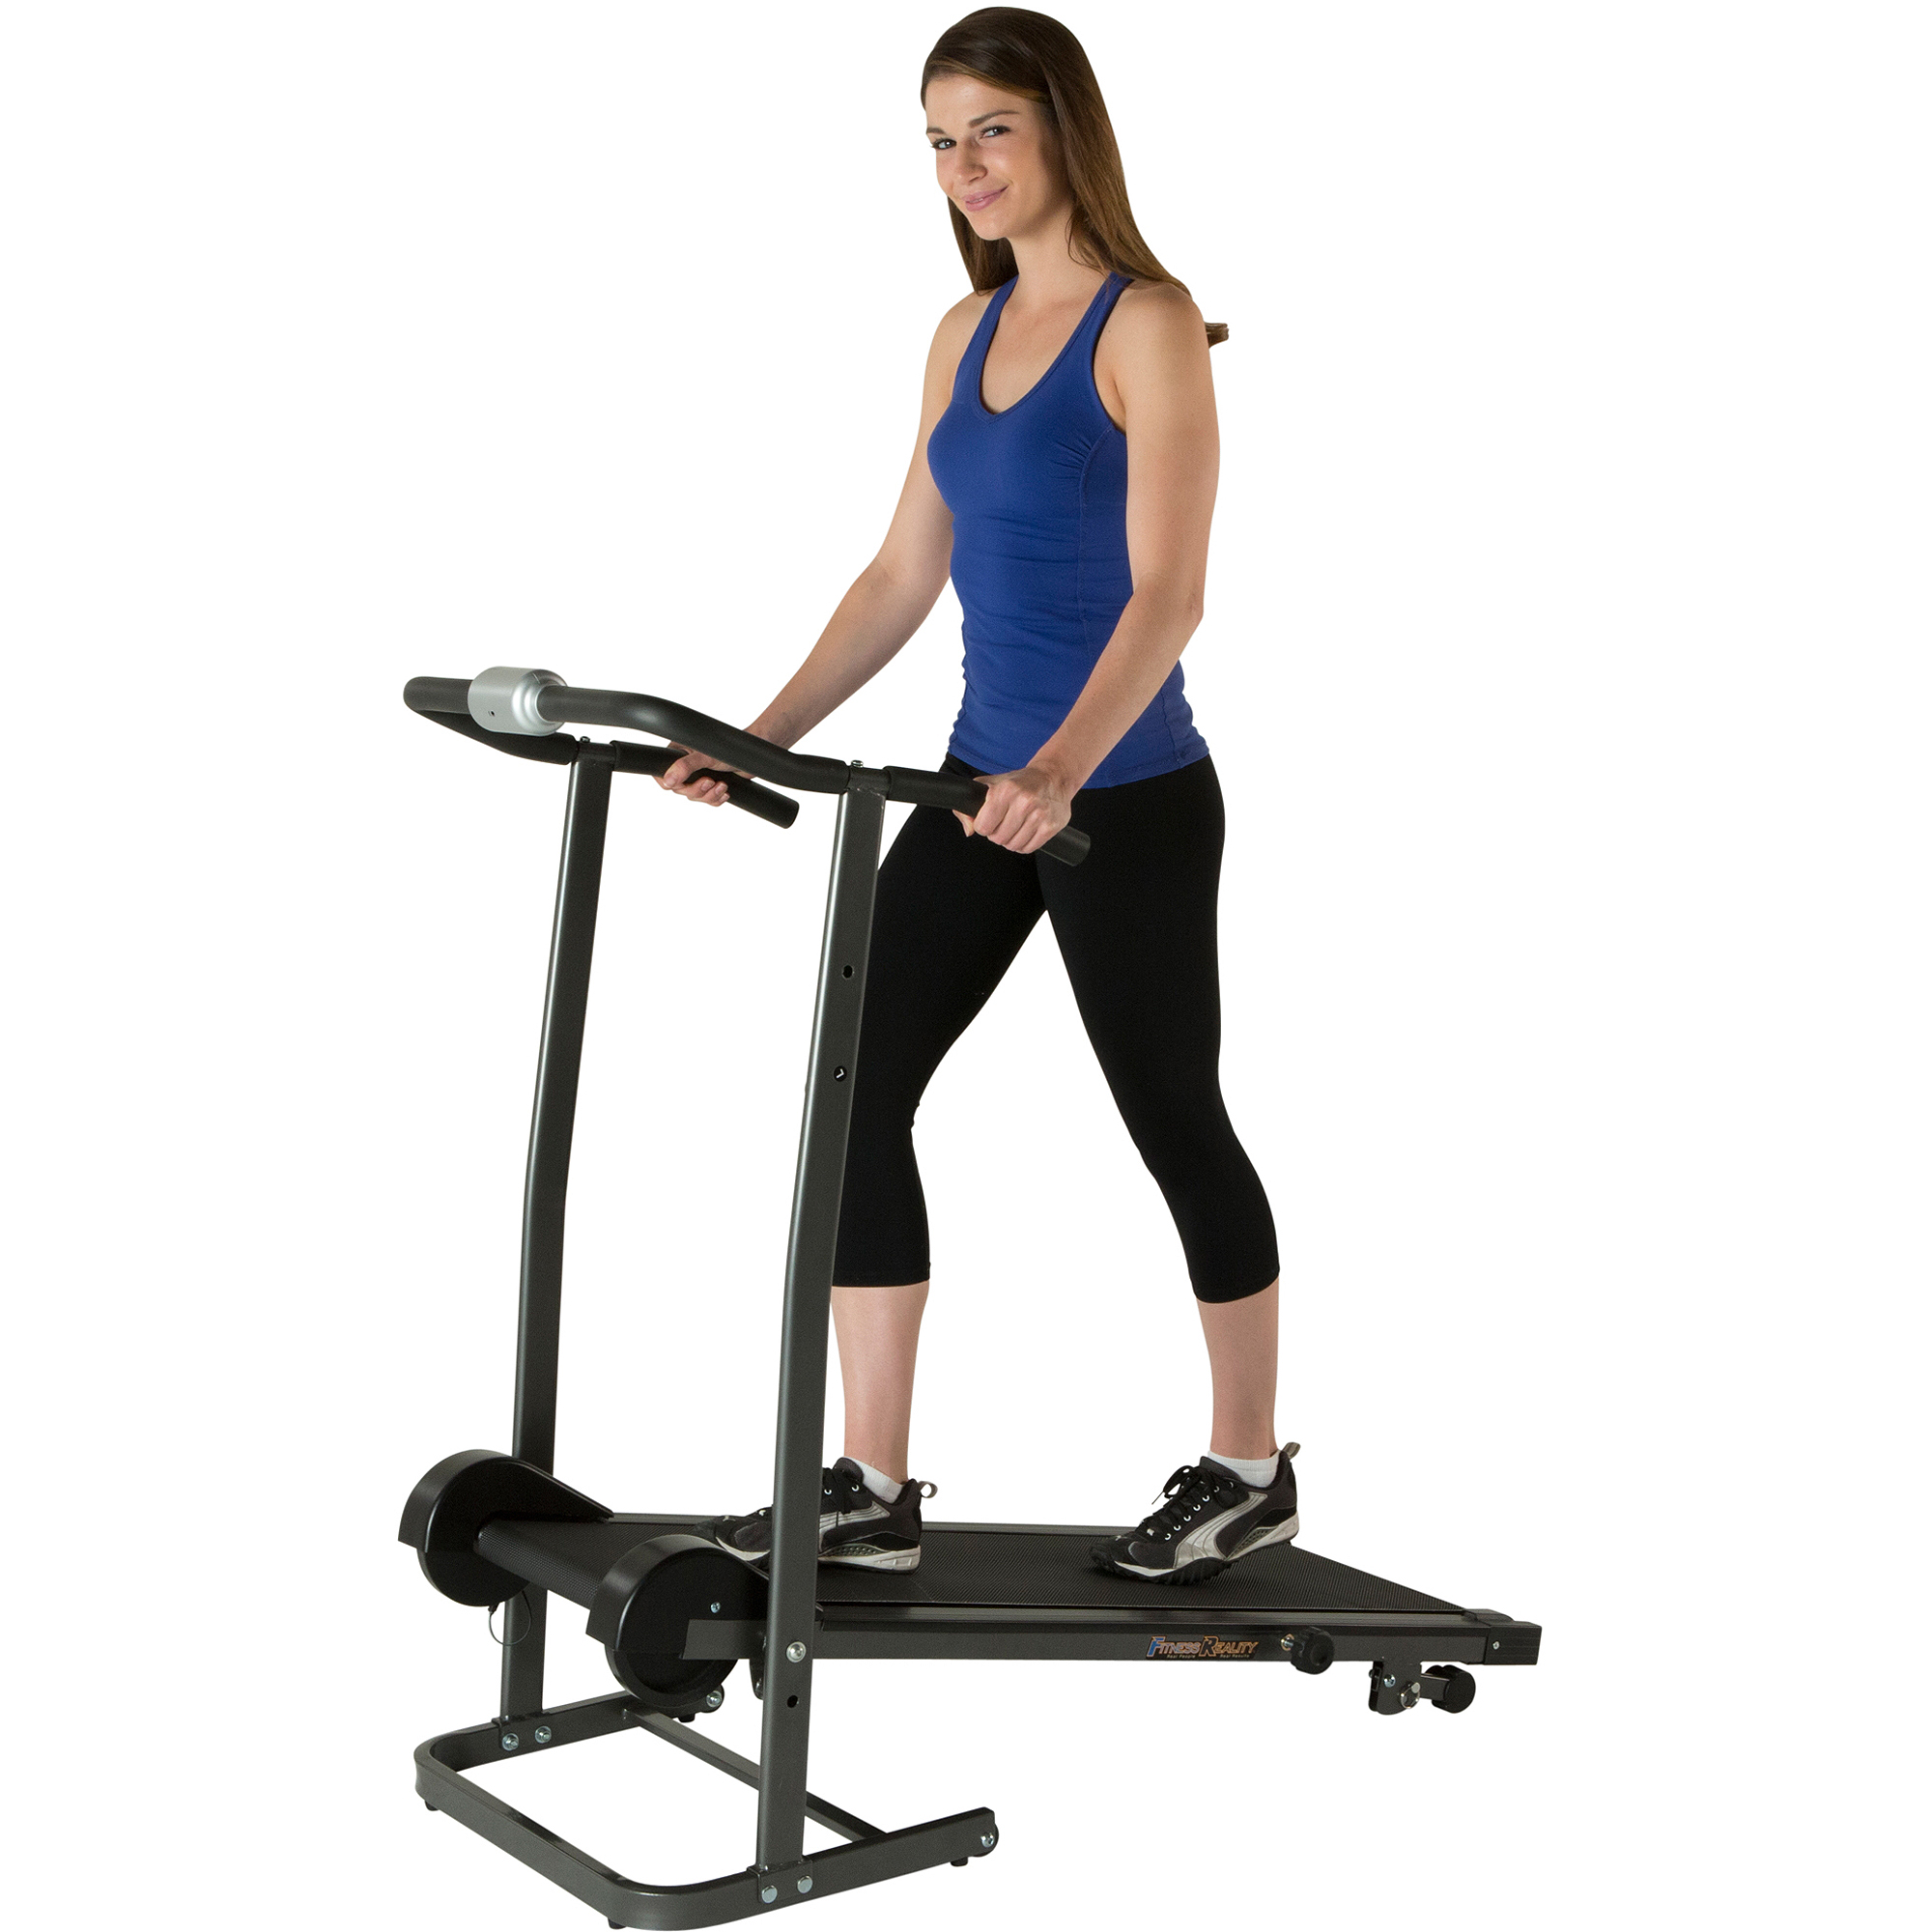 FITNESS REALITY TR1000 Manual Treadmill with 2 Level Incline and Twin Flywheels